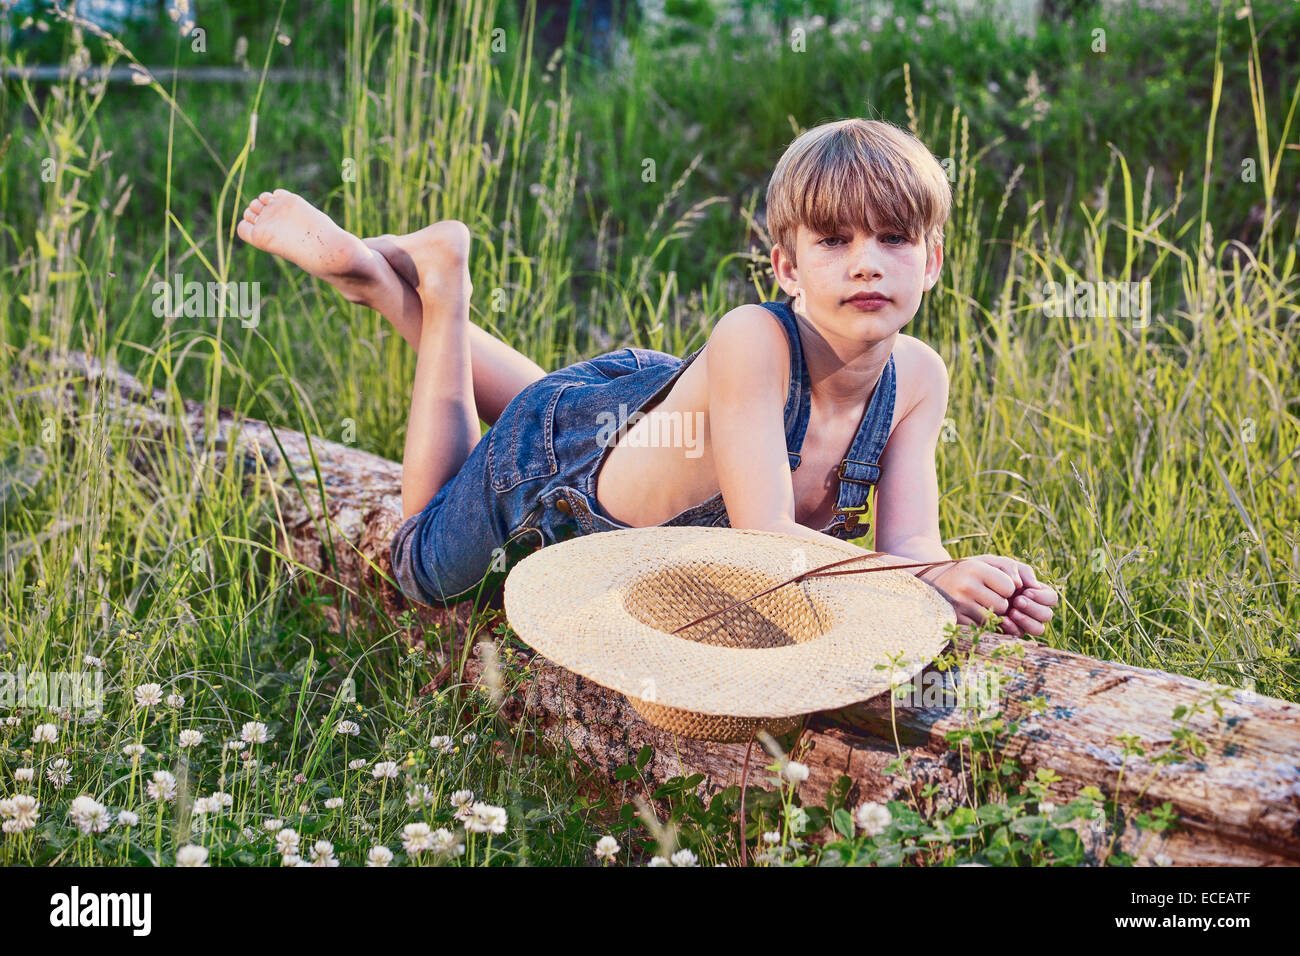 Young boy wearing blue overalls laying on fallen tree - Stock Image